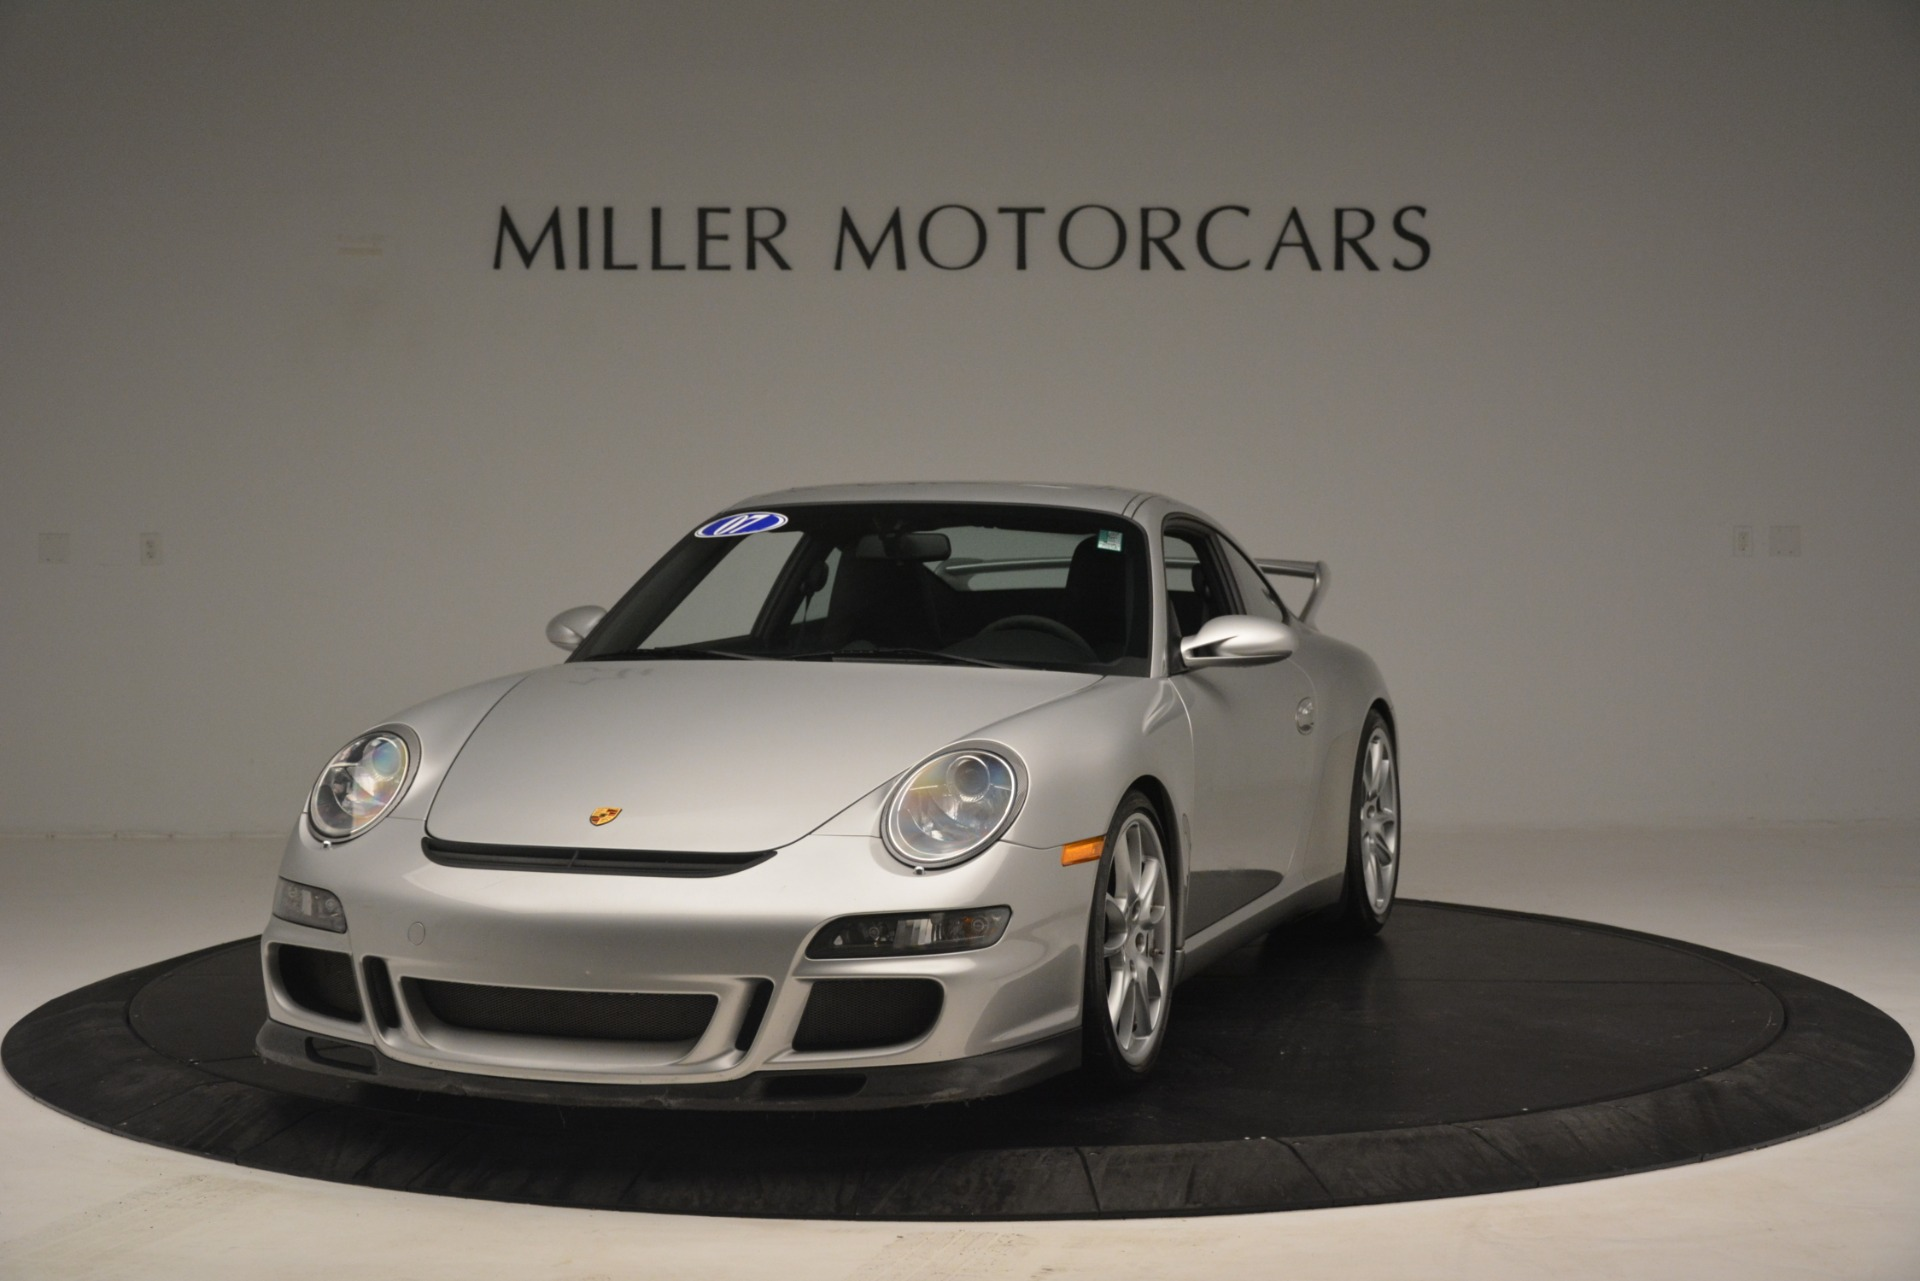 Used 2007 Porsche 911 GT3 for sale Sold at Aston Martin of Greenwich in Greenwich CT 06830 1